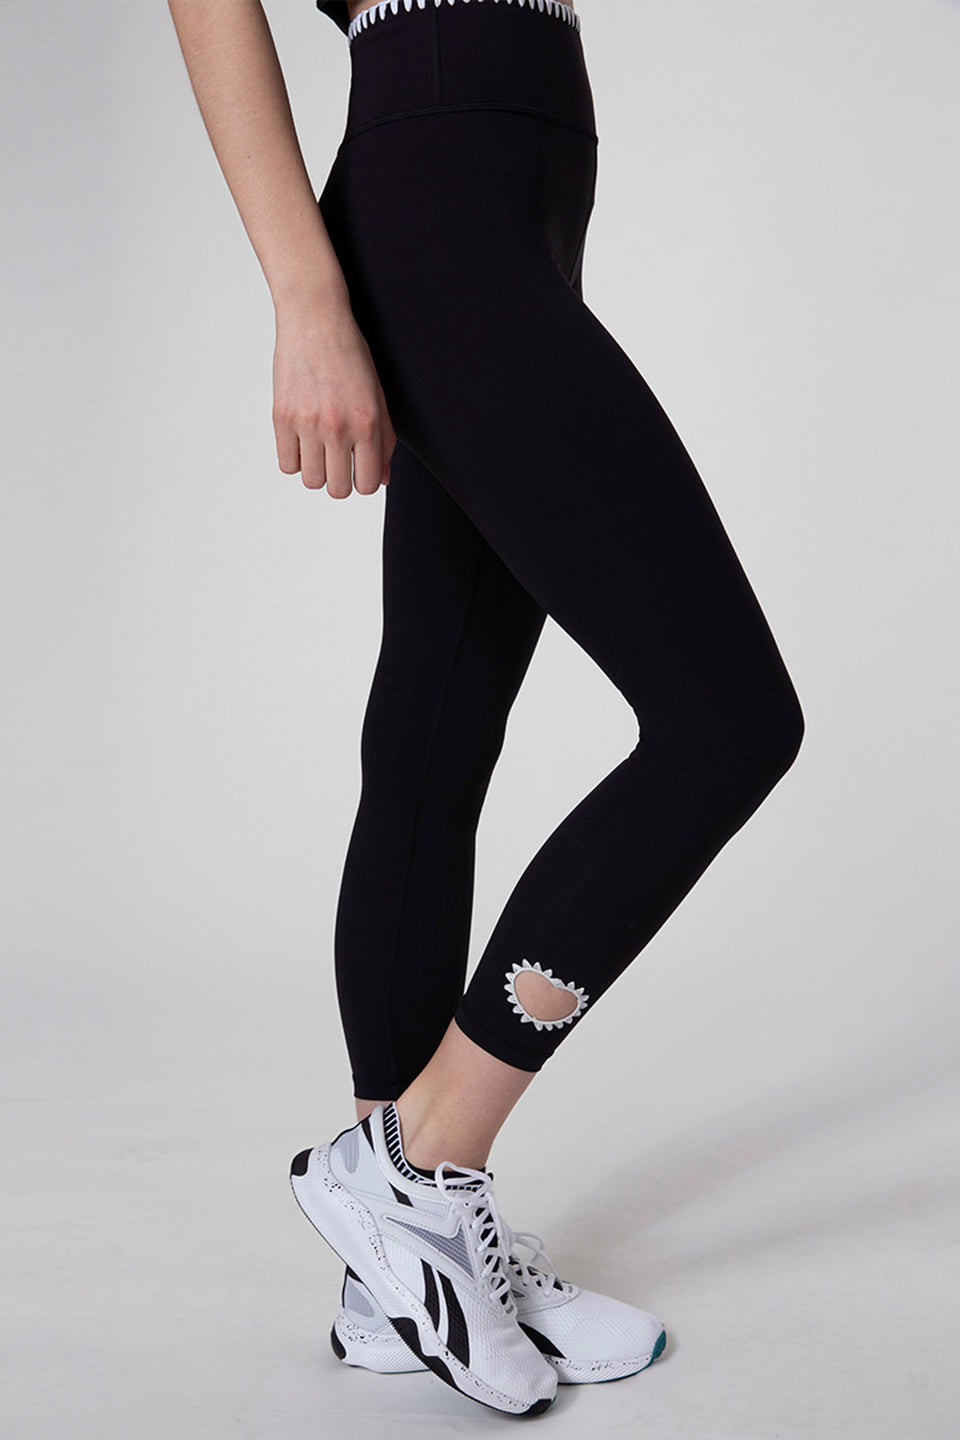 Heart Out Breeches Leggings